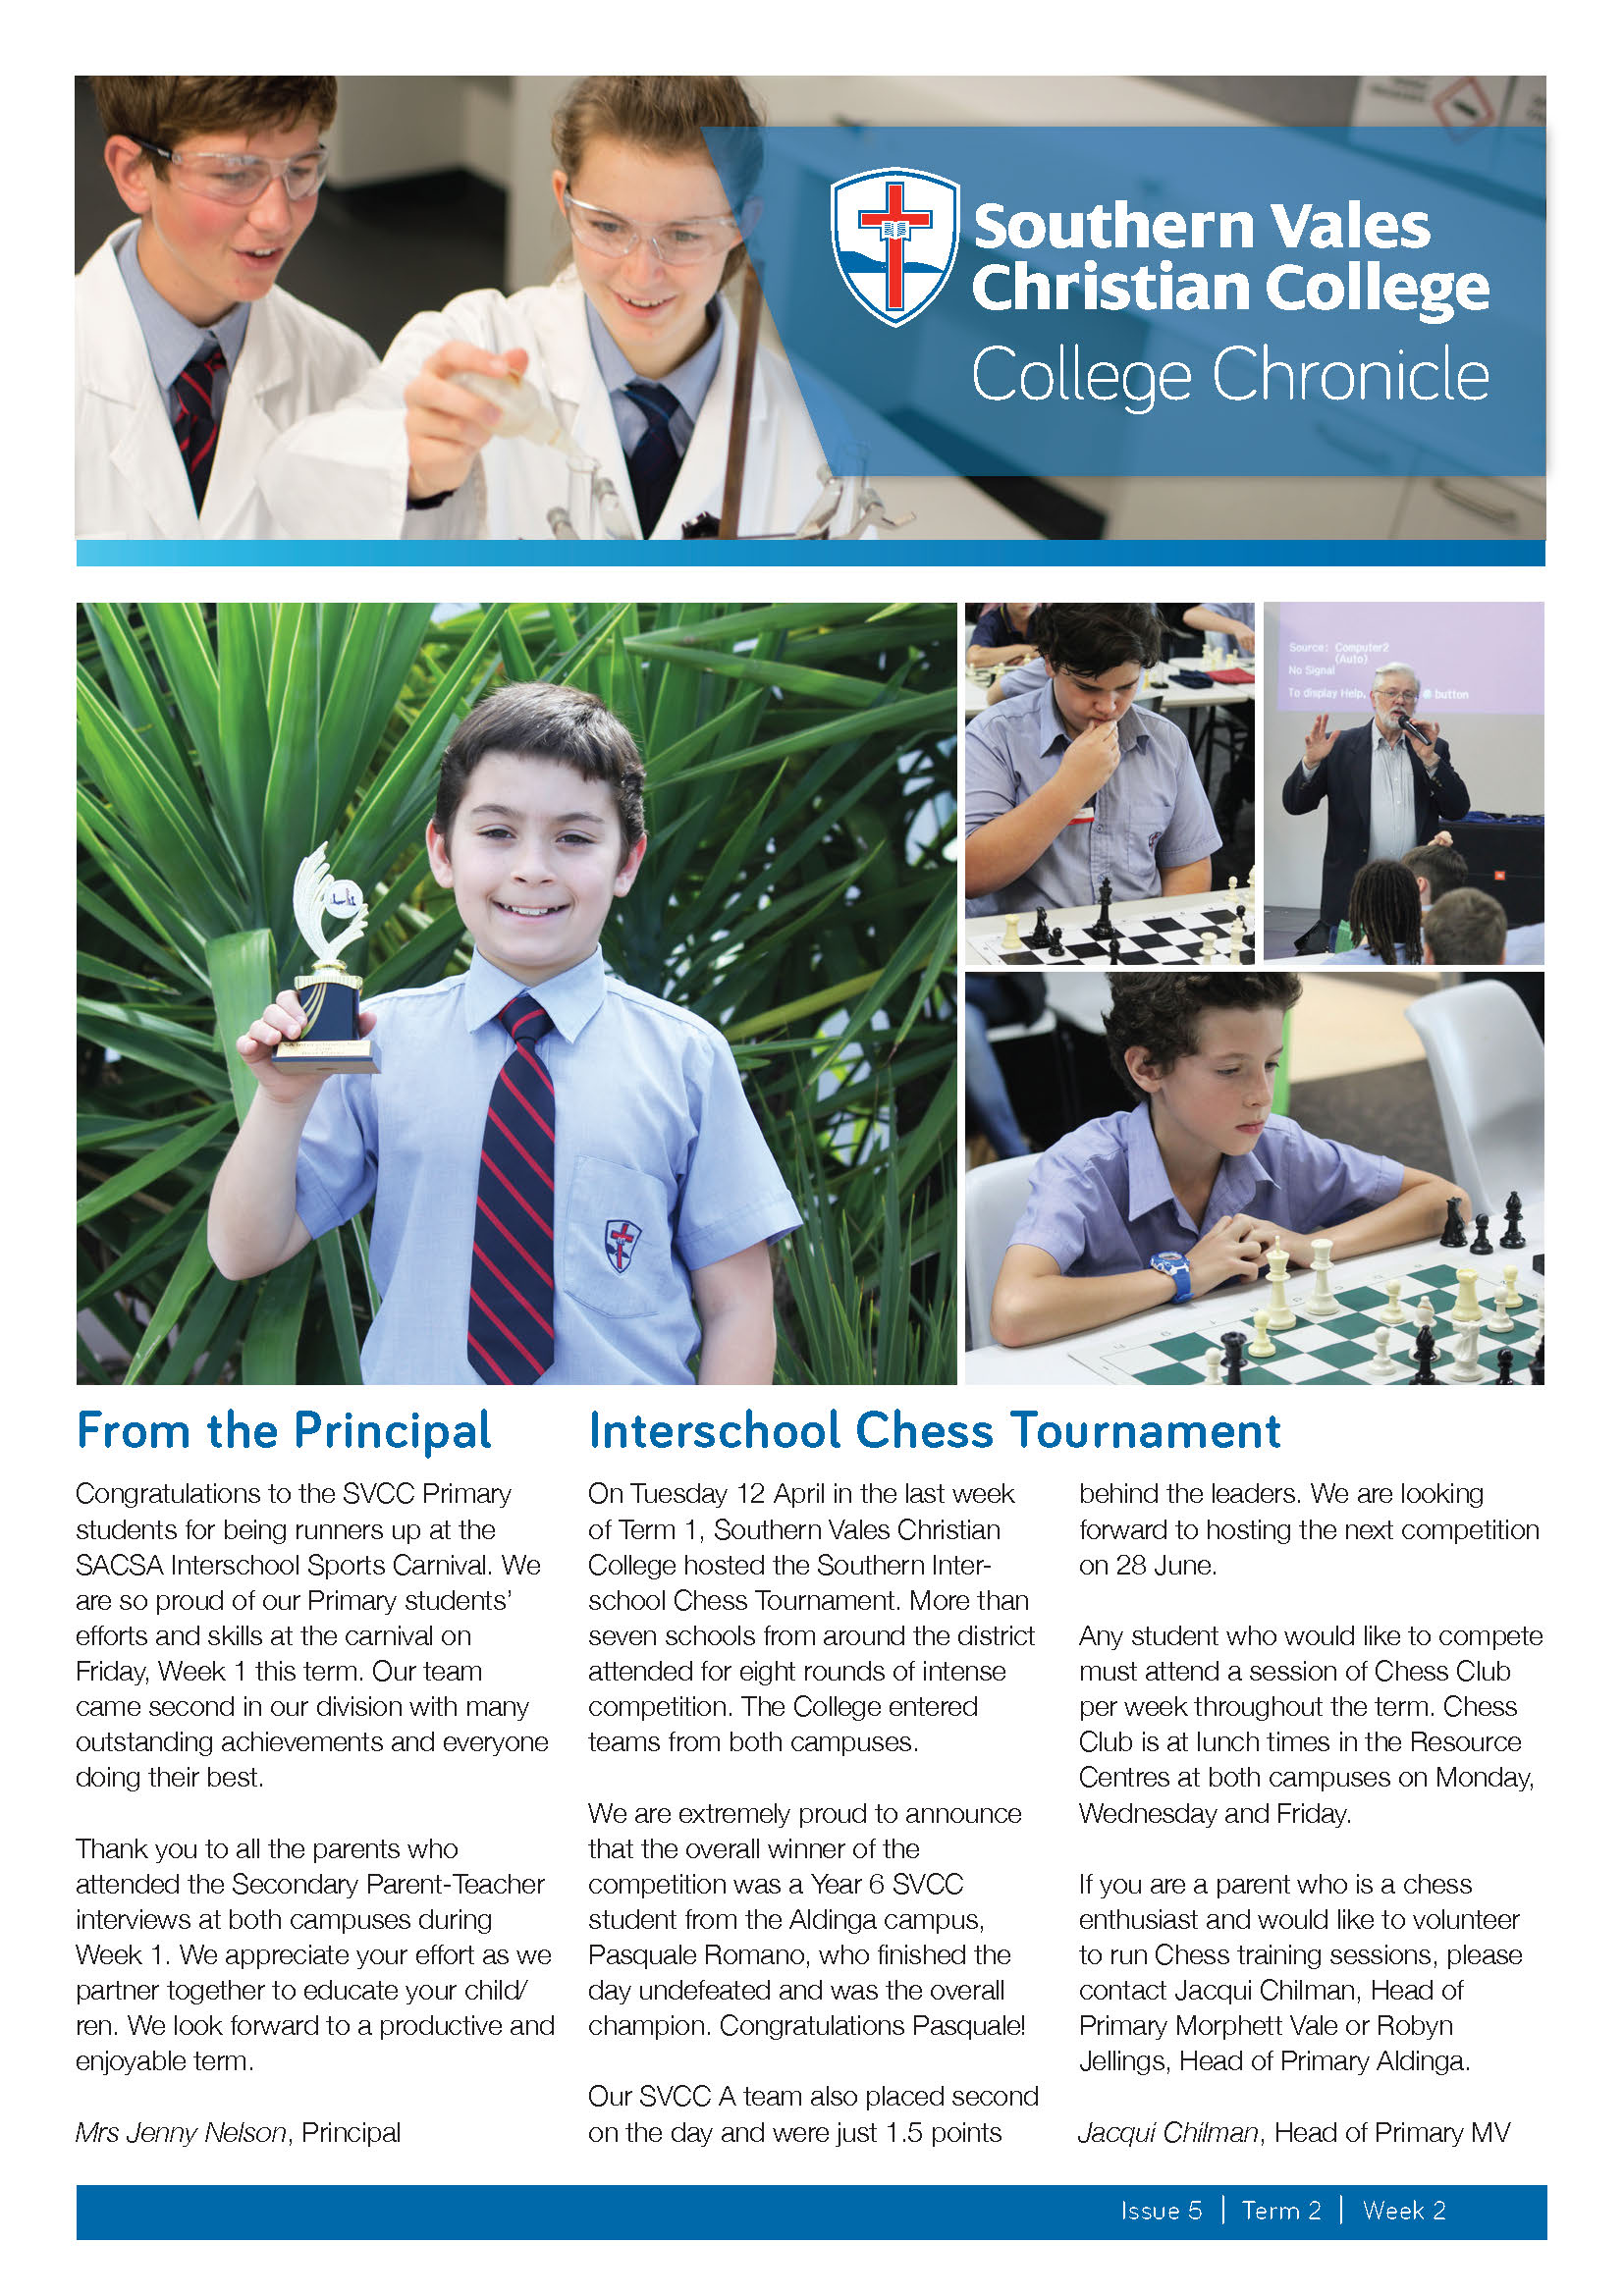 College Chronicle Issue 5 2016_Page_1.jpg